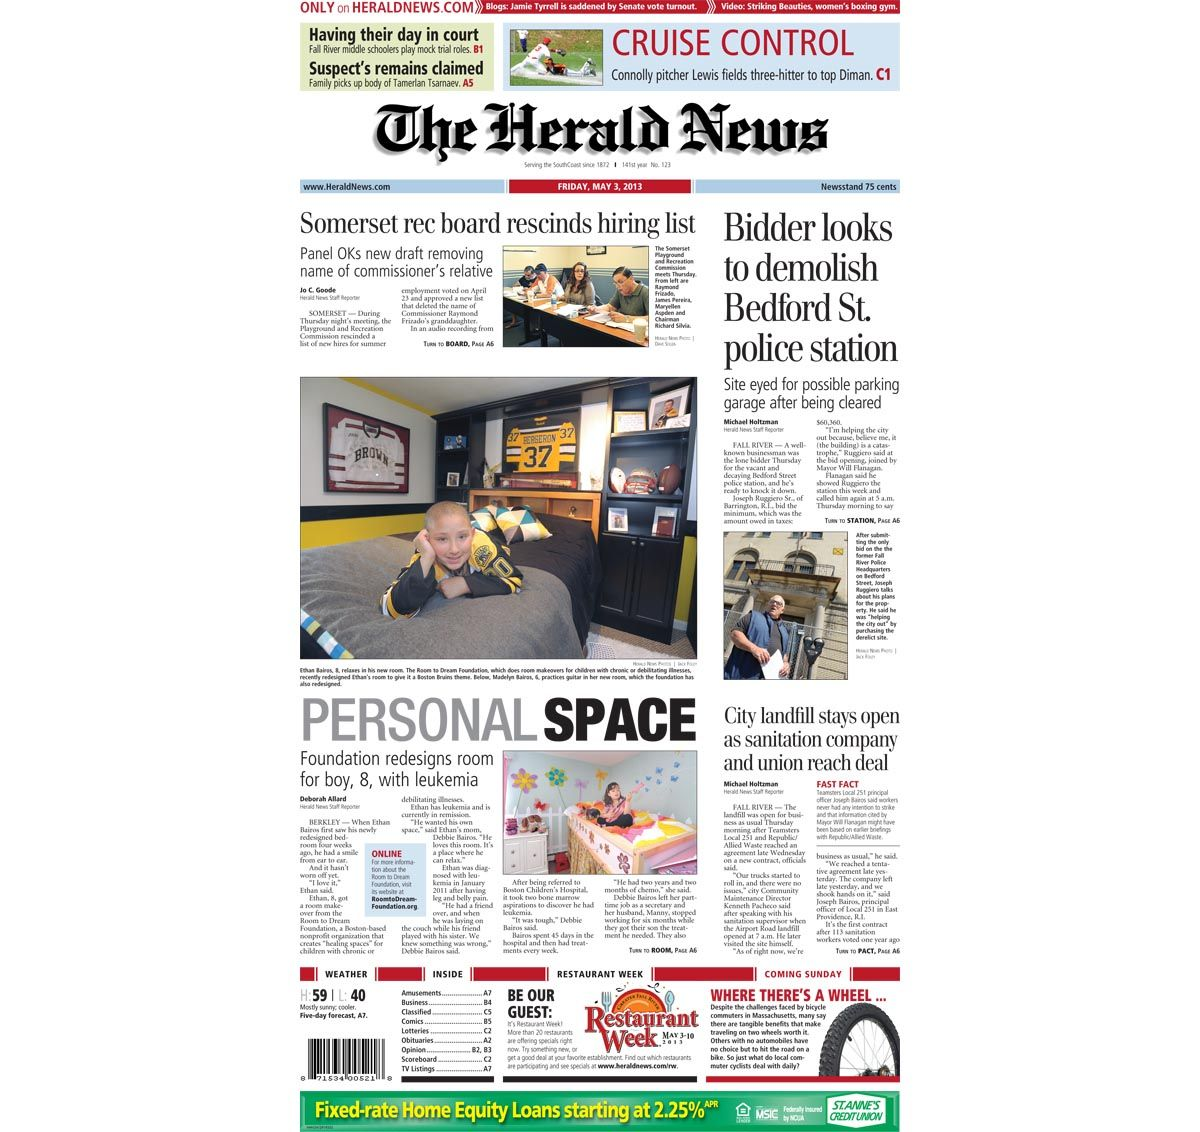 The front page of The Herald News for Friday, May 8, 2018